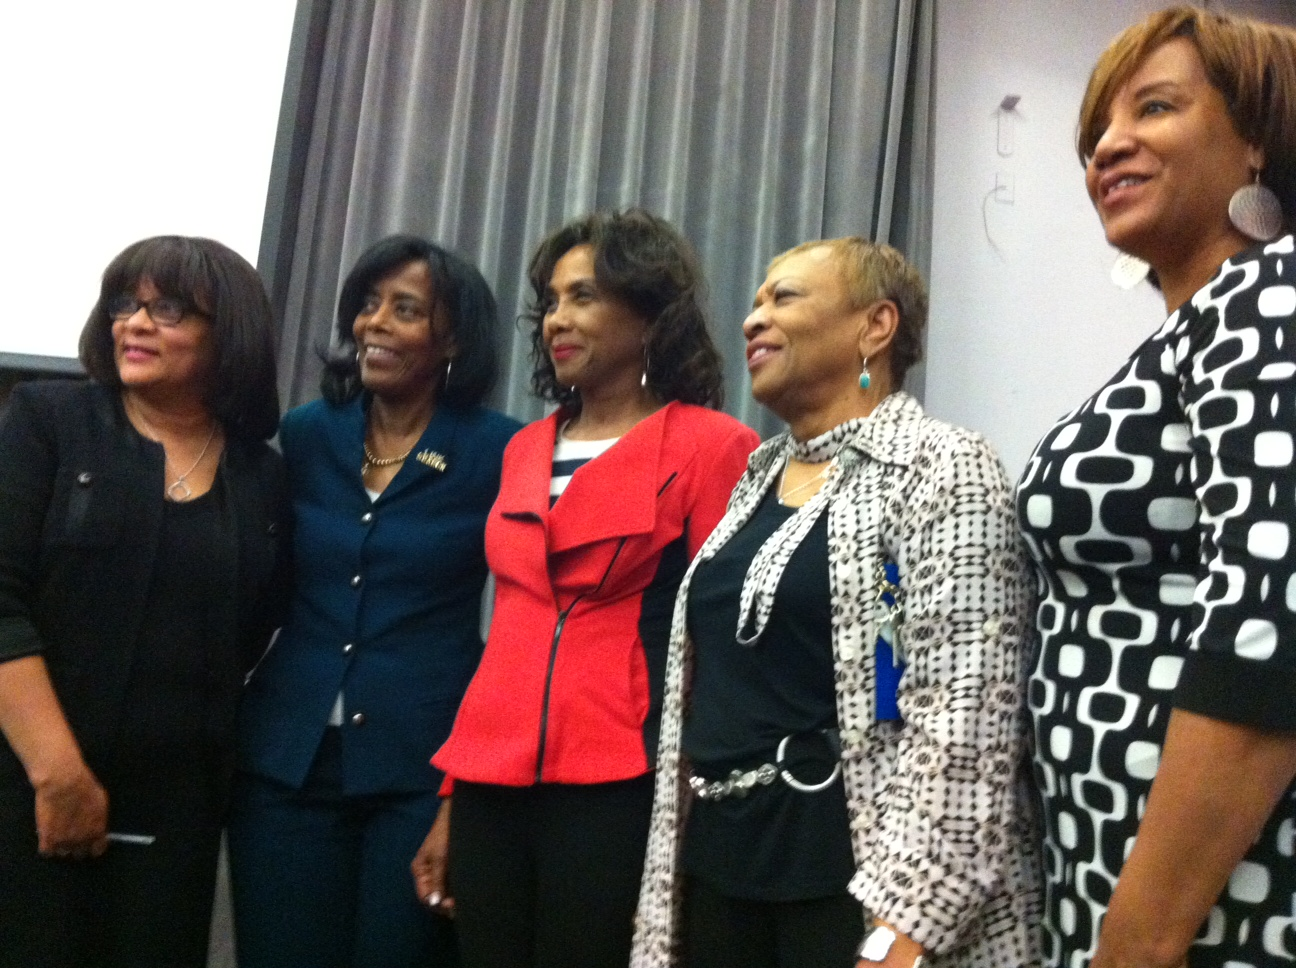 The Brooklyn Links are a classy group of women. Professional, stylish and top patrons of the arts. Brava!